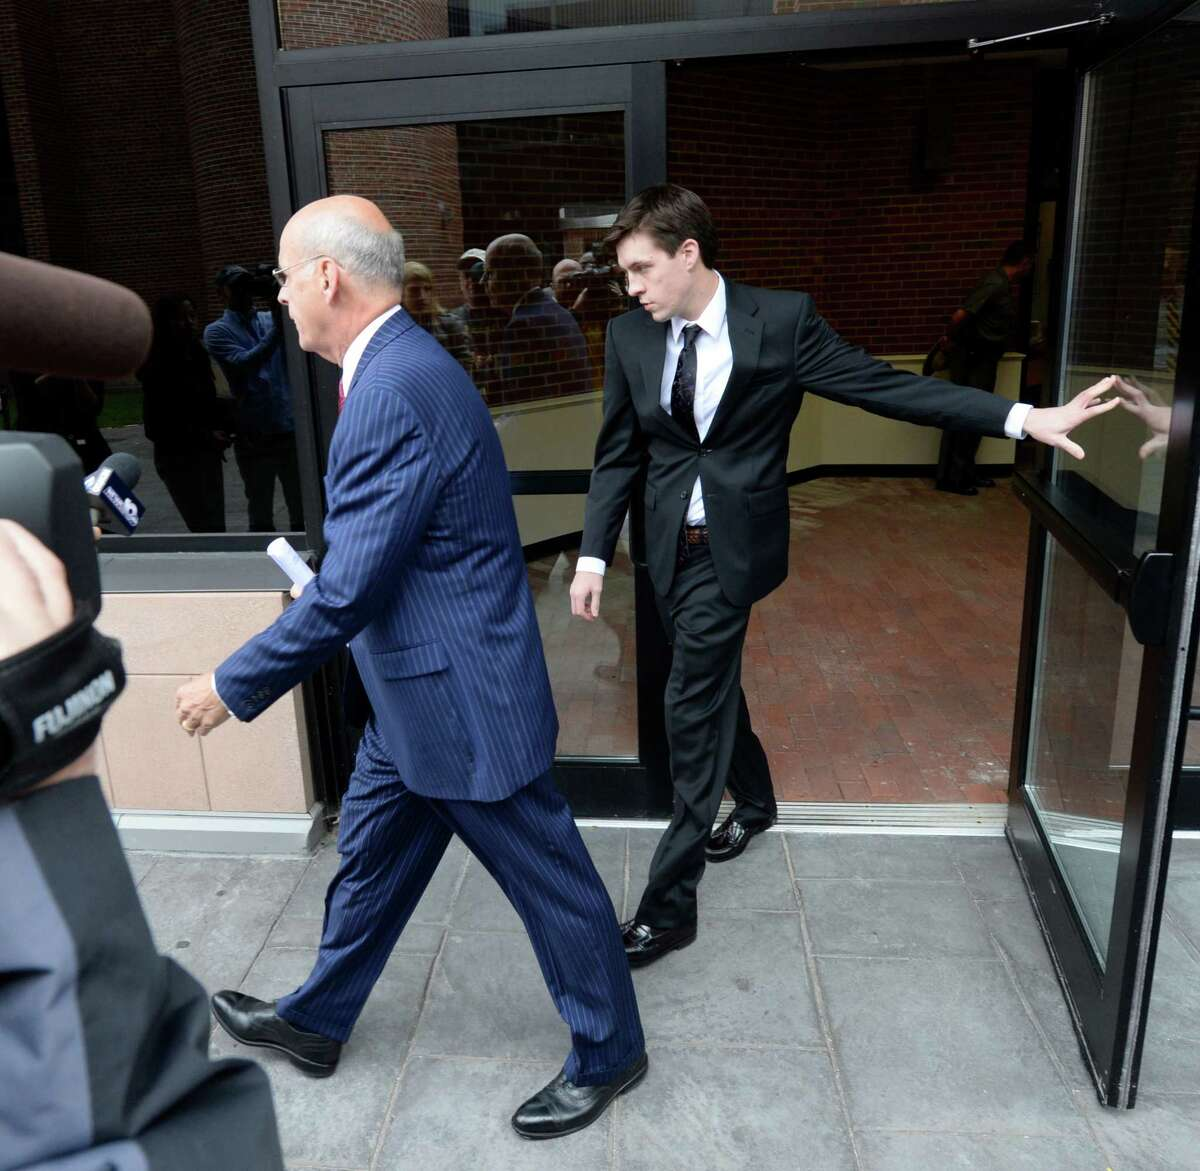 Dennis Drue, right accompanied by his defense attorney Steve Coffey leaves Saratoga County Courthouse where he pleaded guilty Sept. 27, 2013, in Ballston Spa, N.Y. (Skip Dickstein/Times Union)